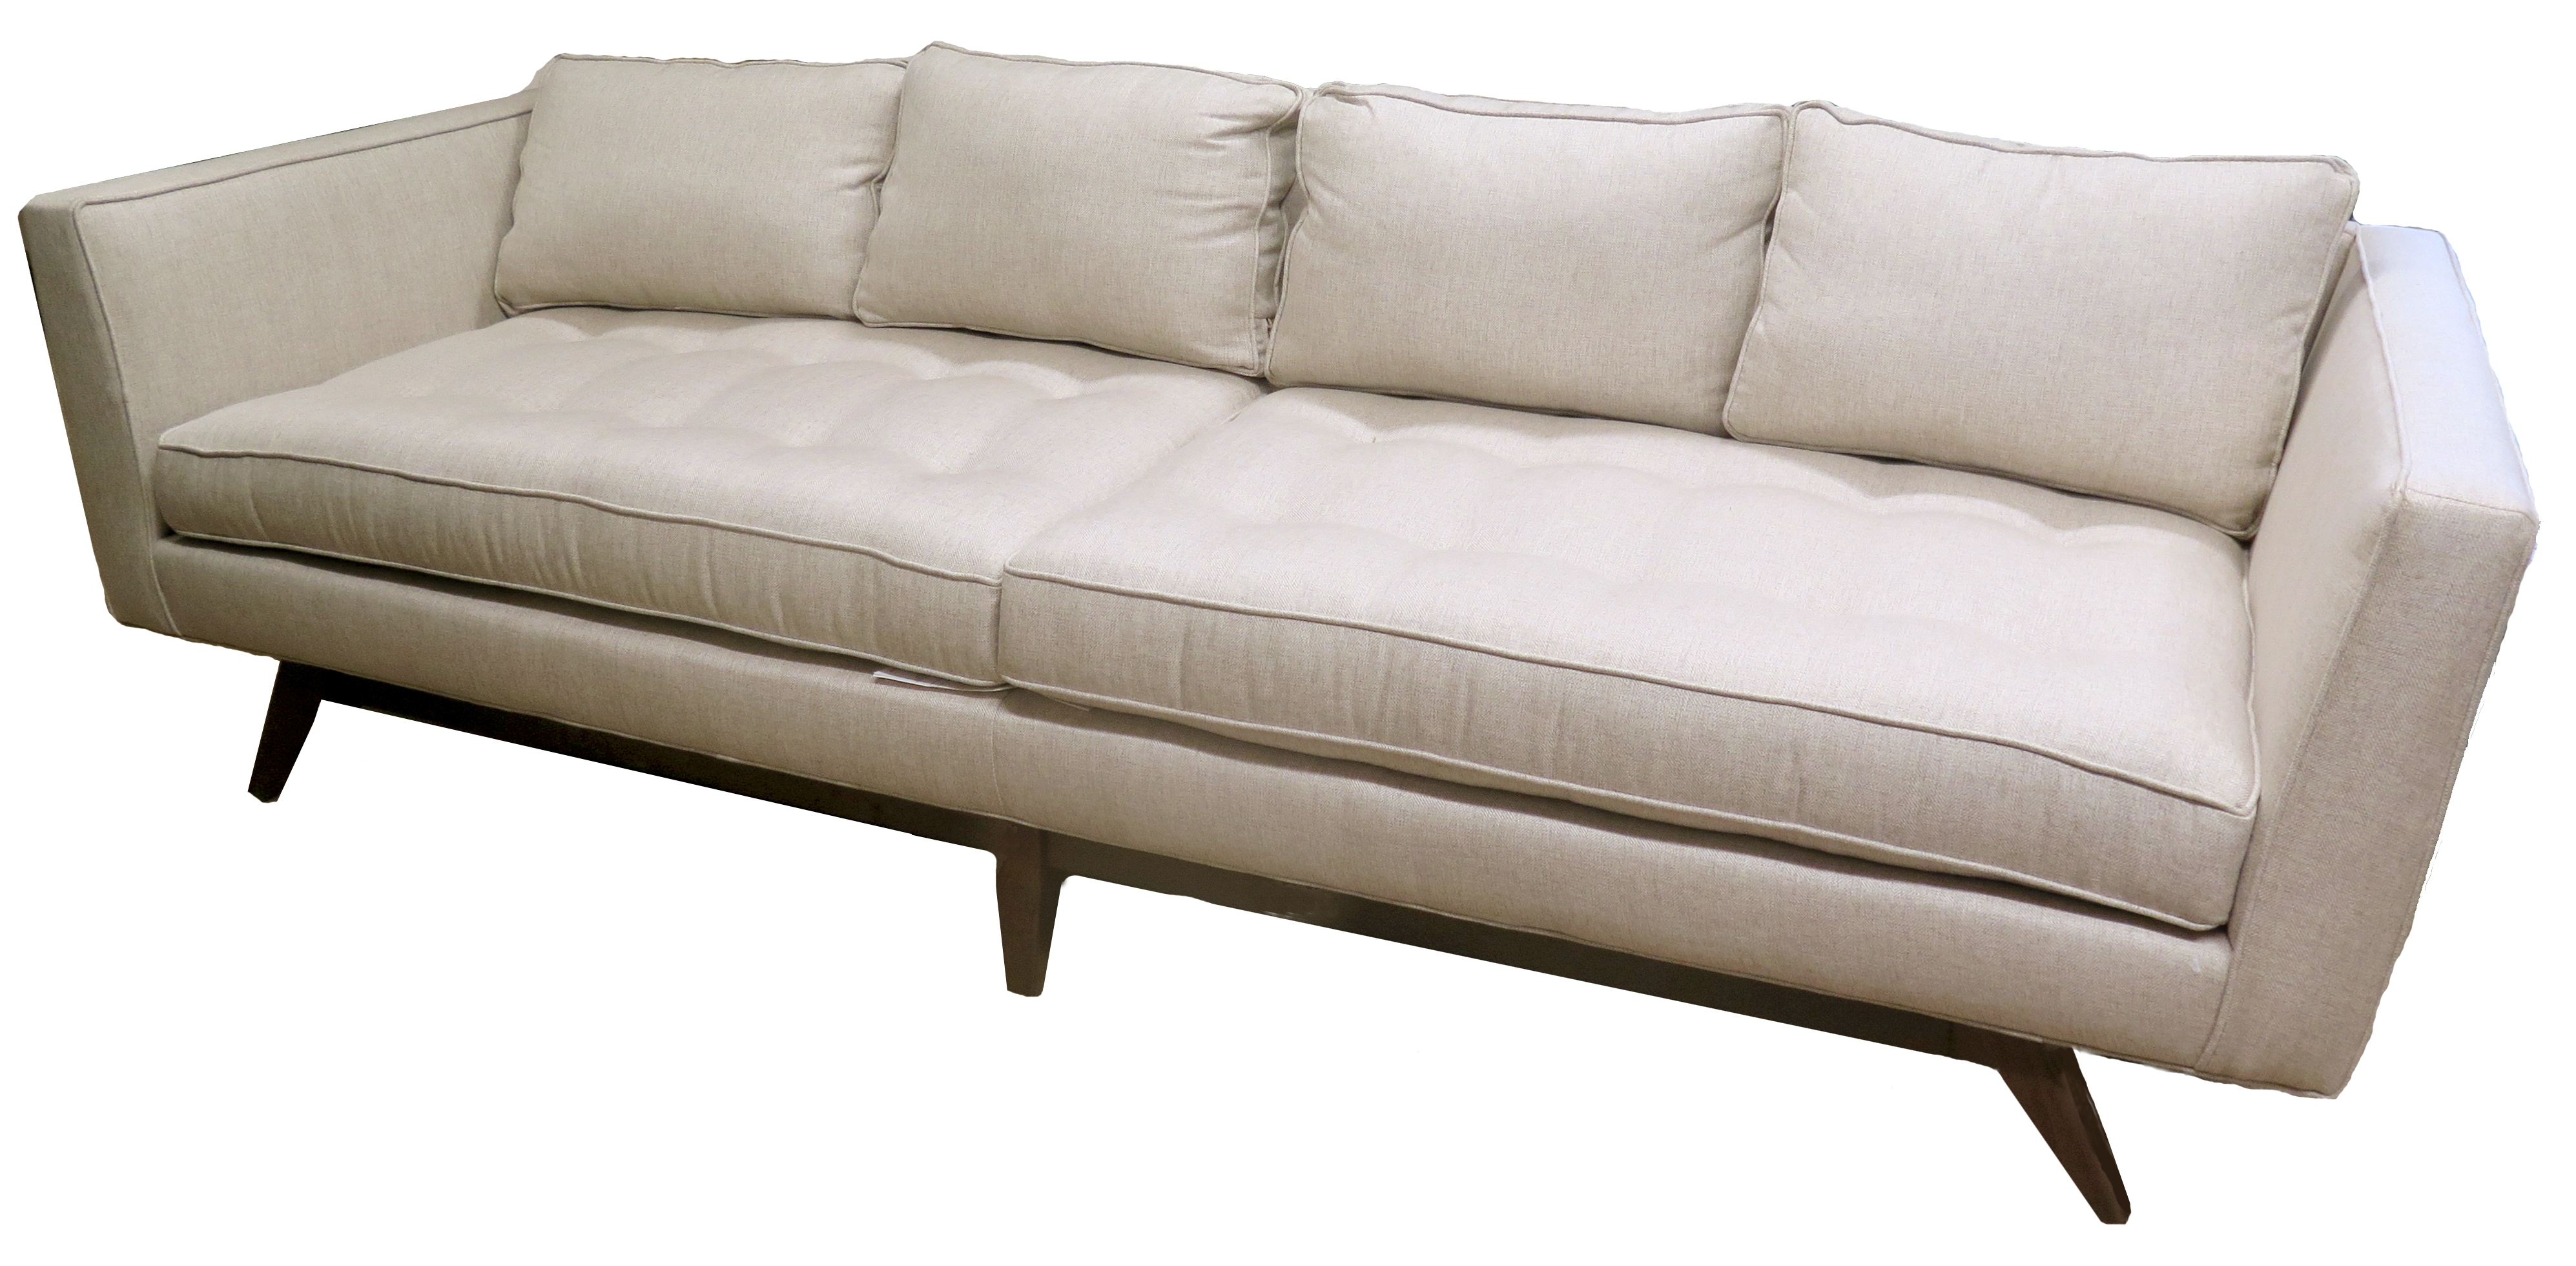 oatmeal sofa dining table and in living room tufted upholstered with tapered wood legs bk lost